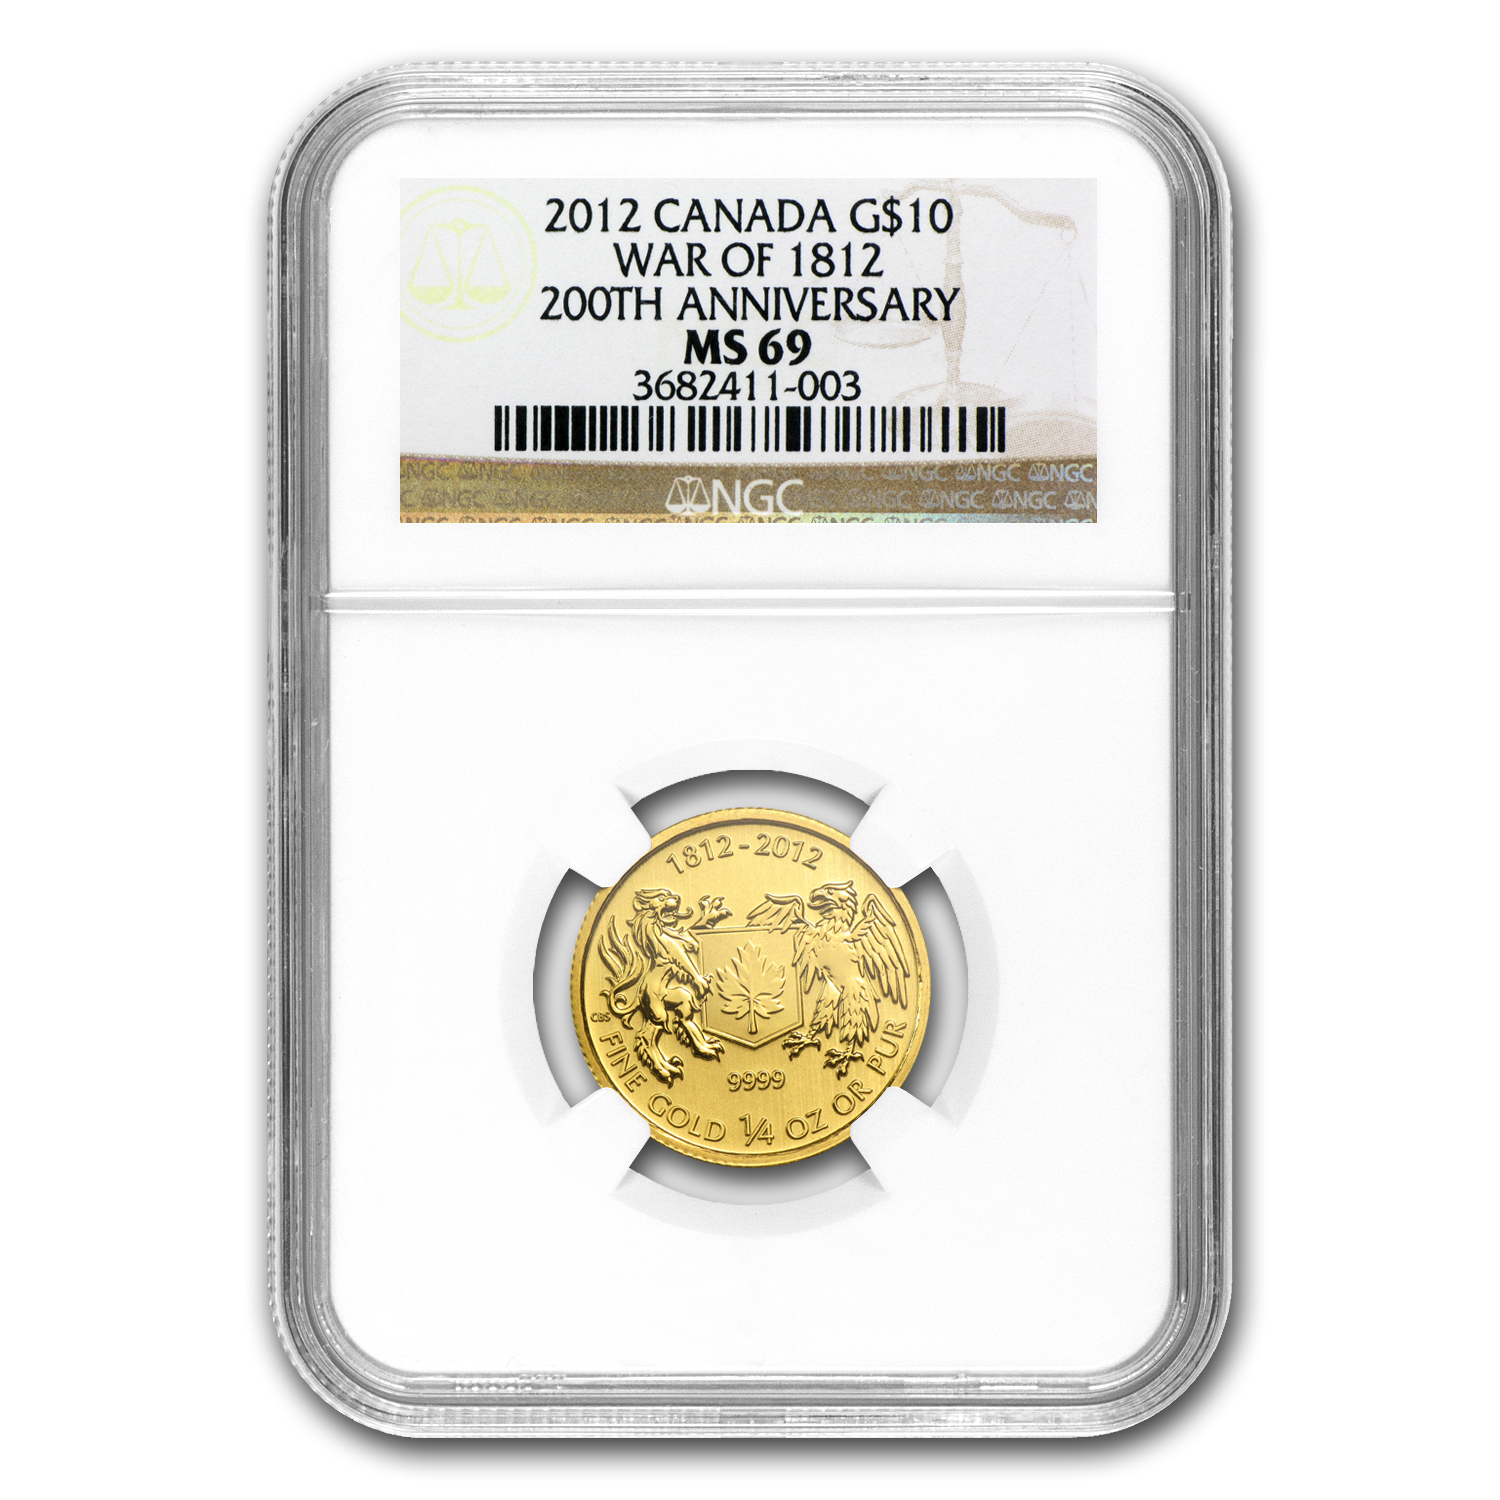 2012 1/4 oz Gold Canadian $10 War of 1812 MS-69 NGC